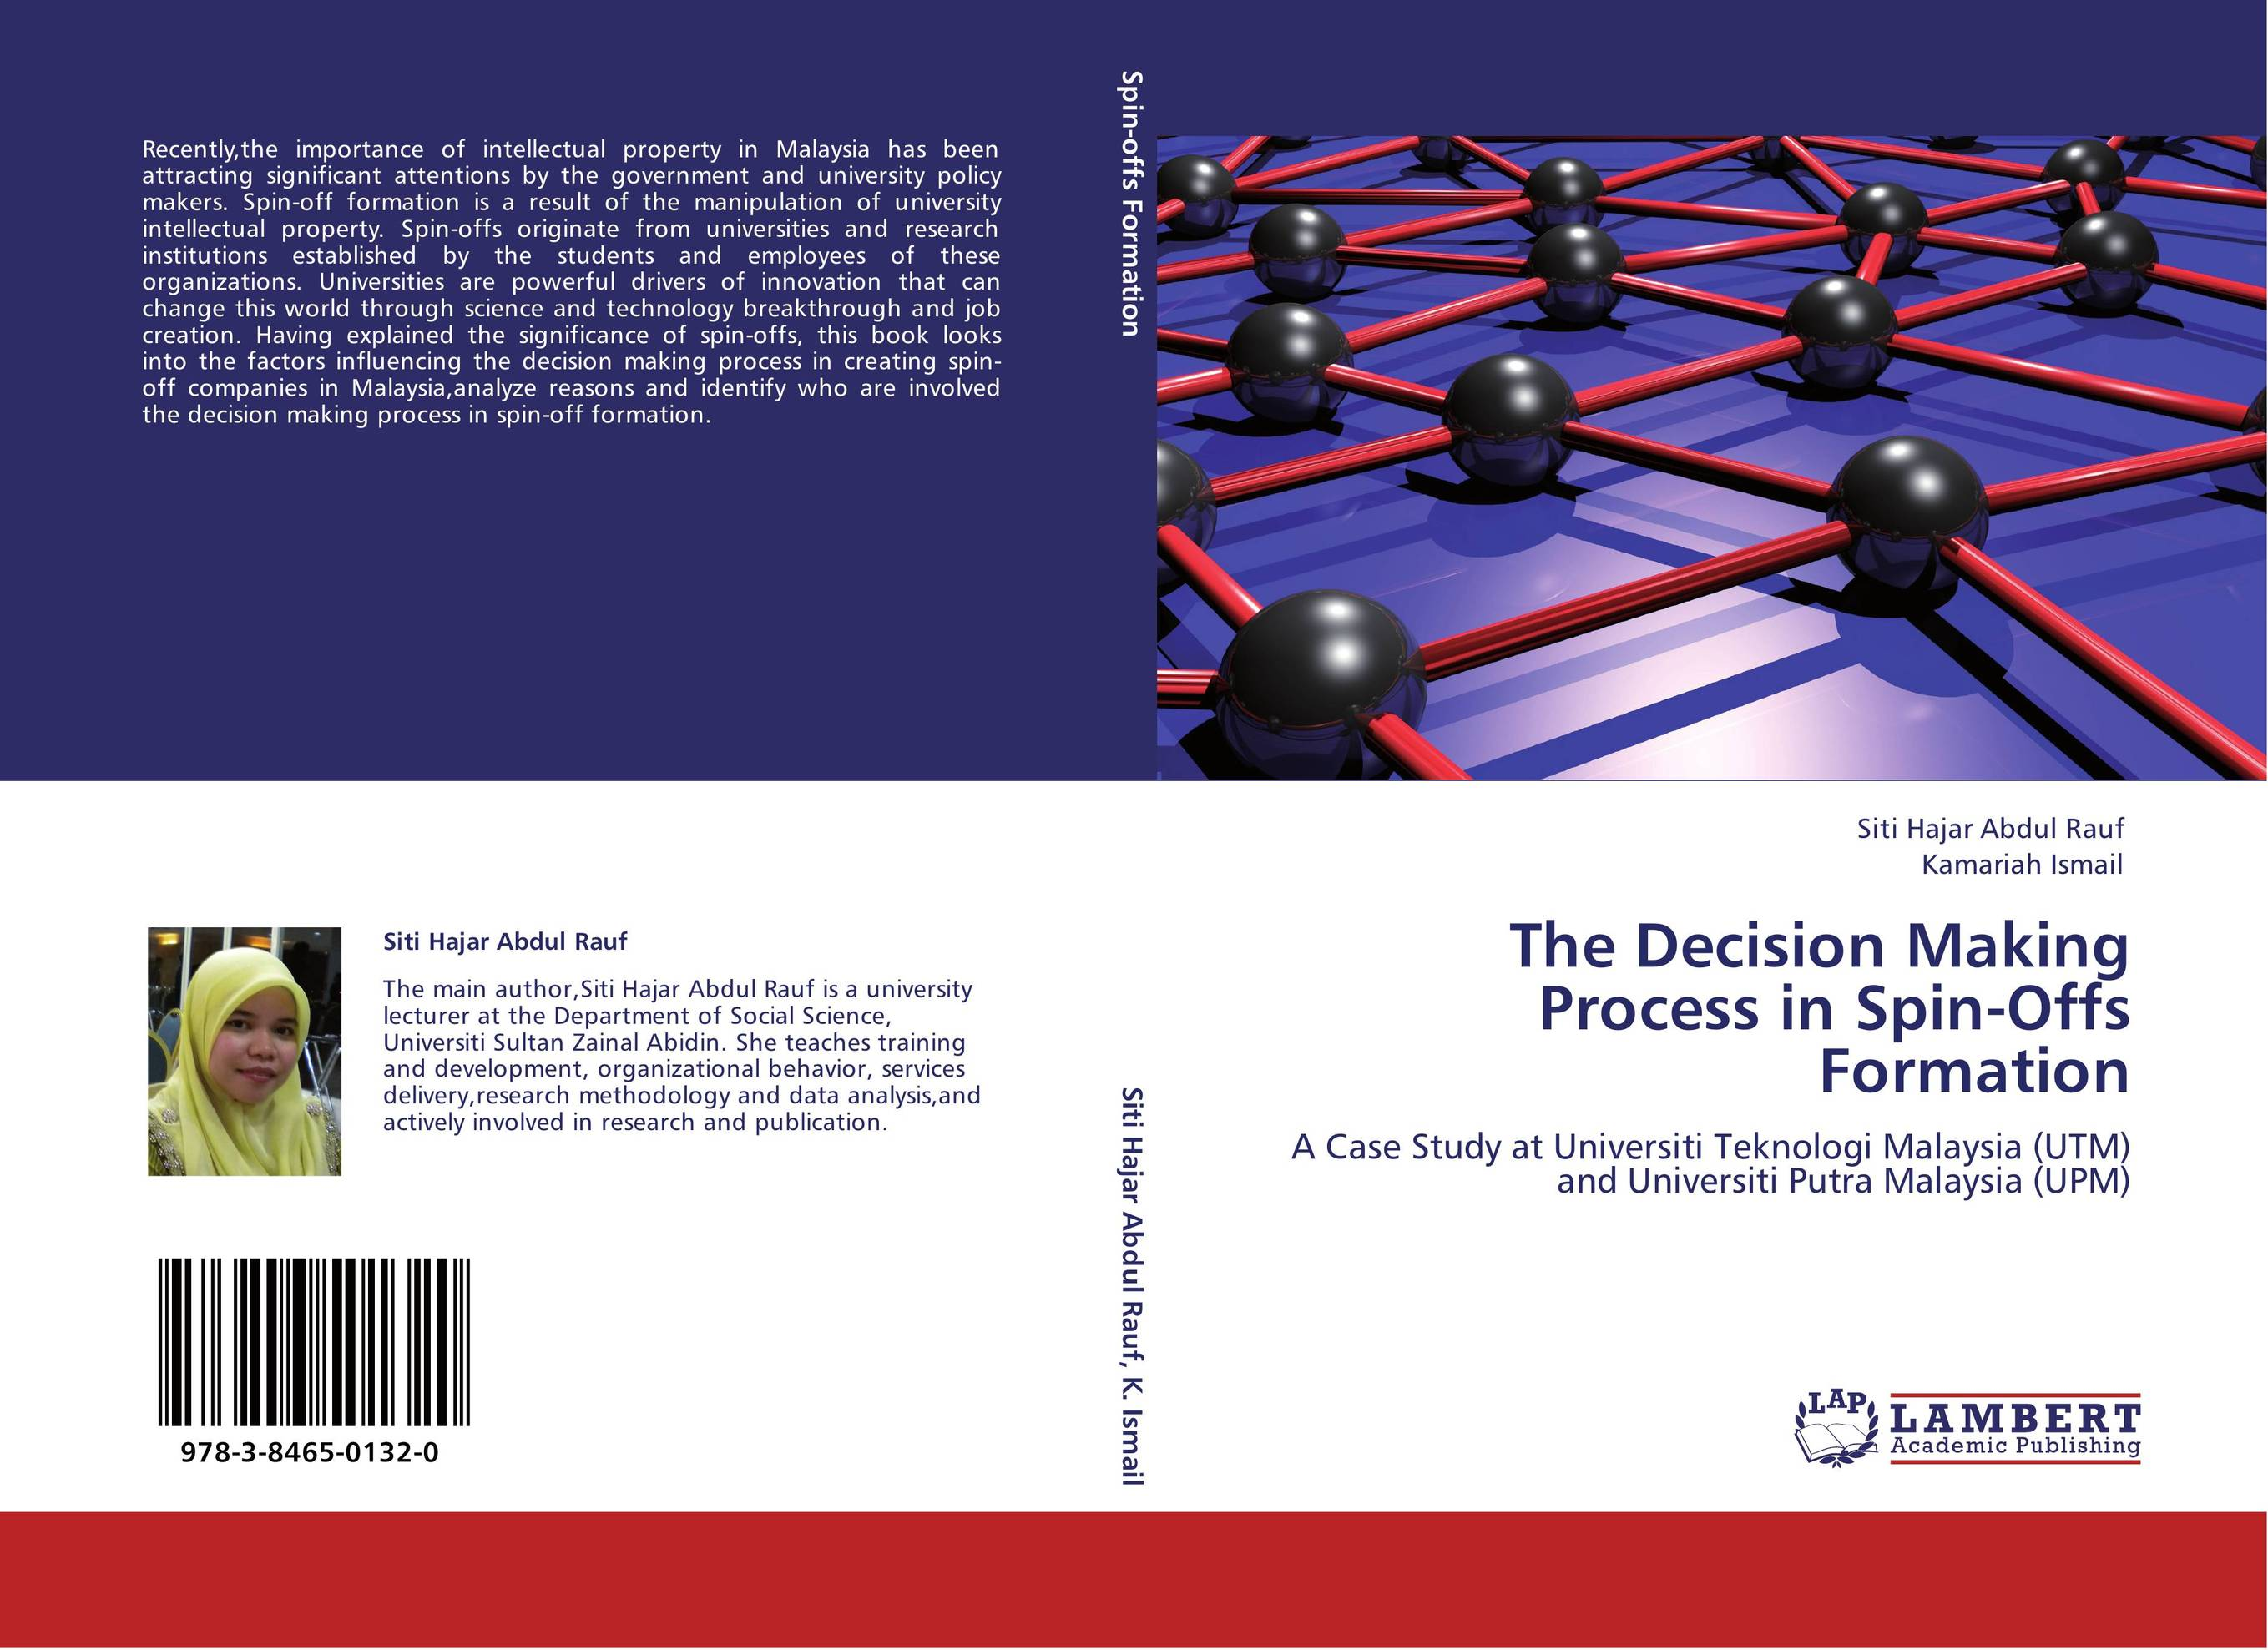 scientific decision making process Dr hamilton's boundless sense of wonder and enthusiasm for the subject of human decision making, solid foundation in the scientific method, and pervasive sense of humor are apparent in every lecture.